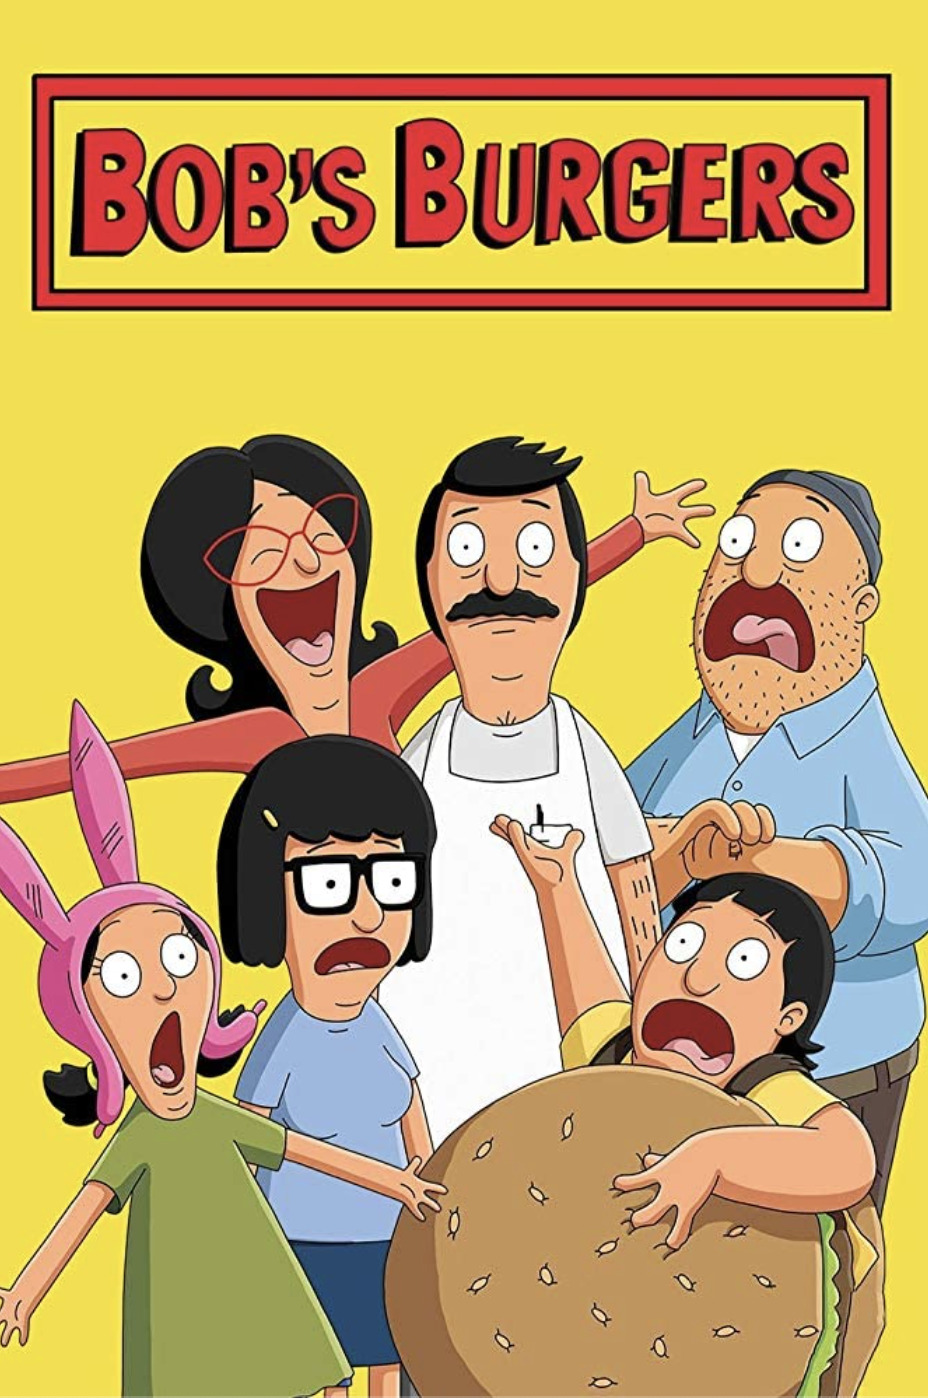 Bob's Burgers: The Movie movie poster with Bob looking miserable while his family have their mouths open as if singing (terribly)